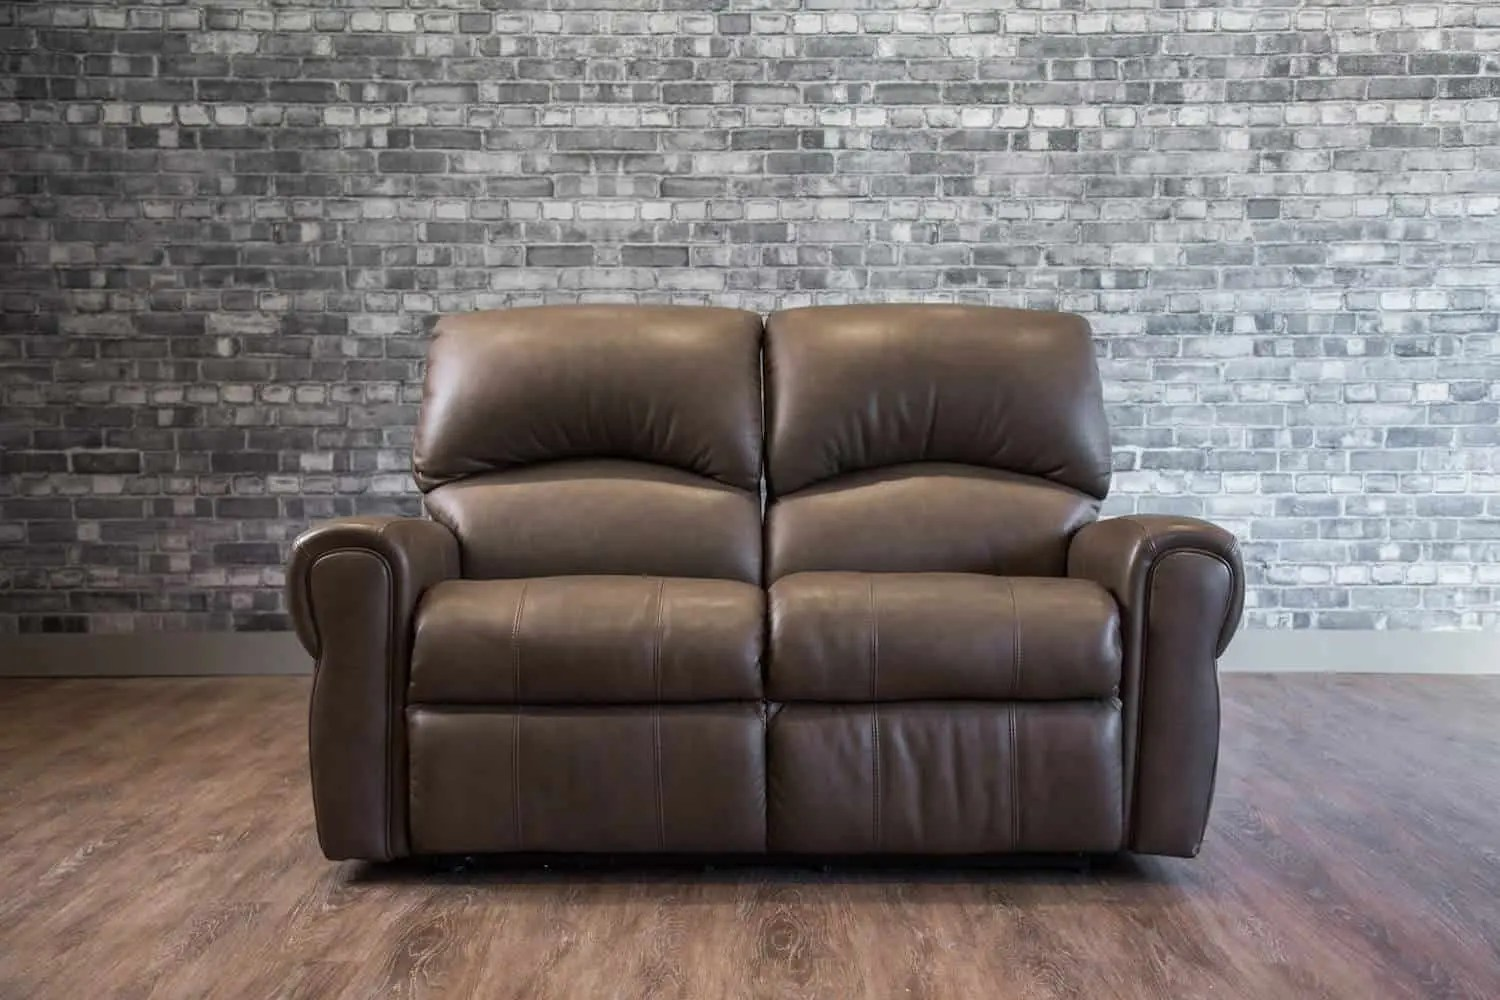 Leather Recliner Chairs Canada The Nebula Motion Series Collection Canada 39s Boss